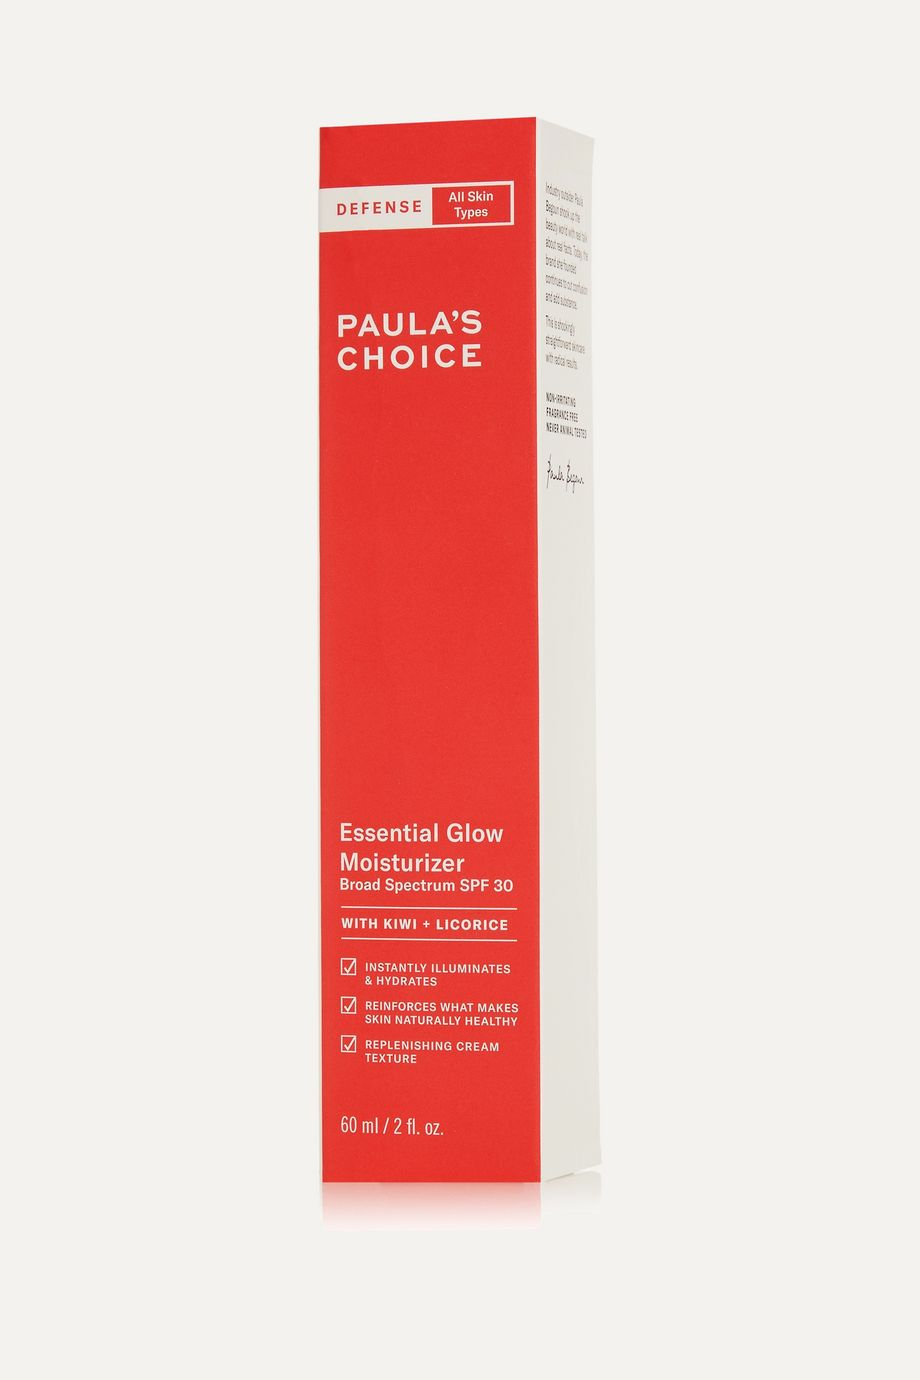 Paula's Choice Defense Essential Glow Moisturizer SPF30, 60ml